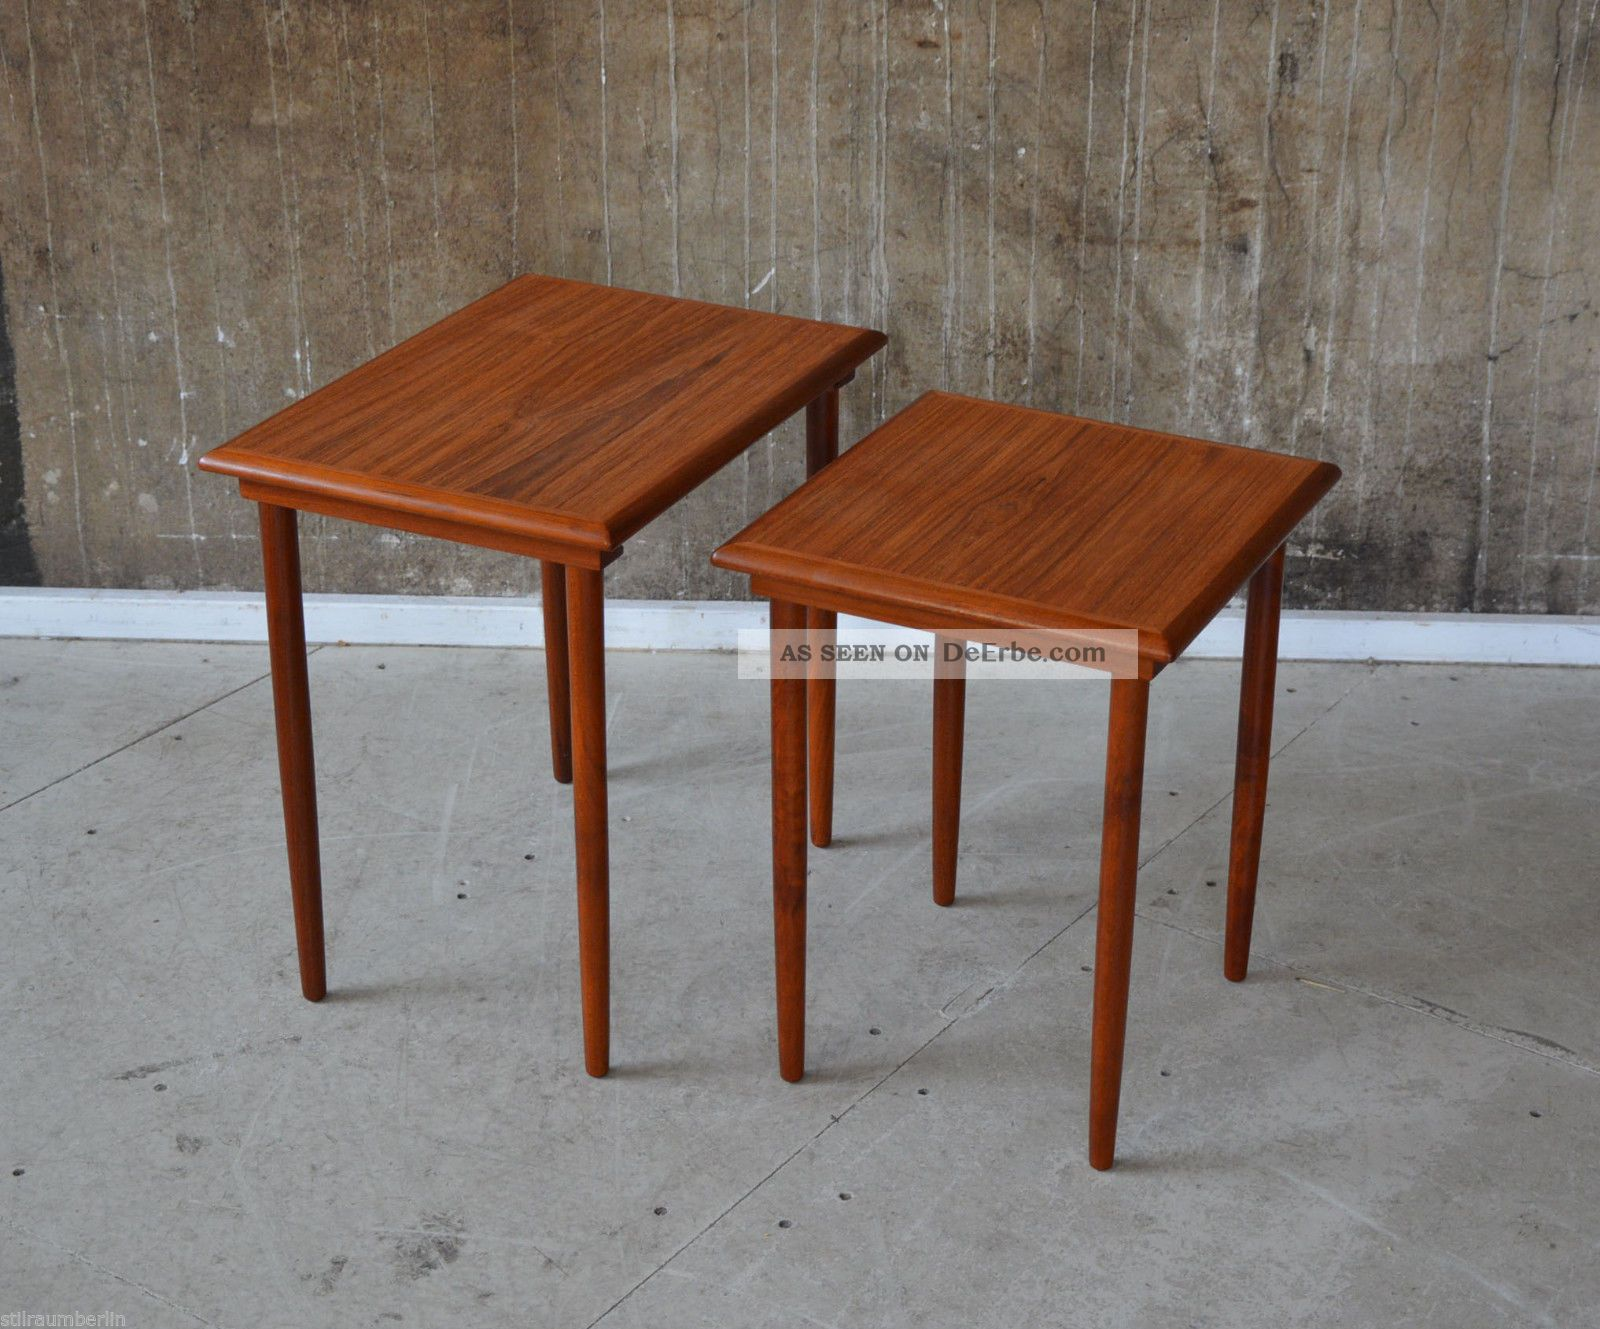 60er teak satztische beistelltisch danish design 60s. Black Bedroom Furniture Sets. Home Design Ideas